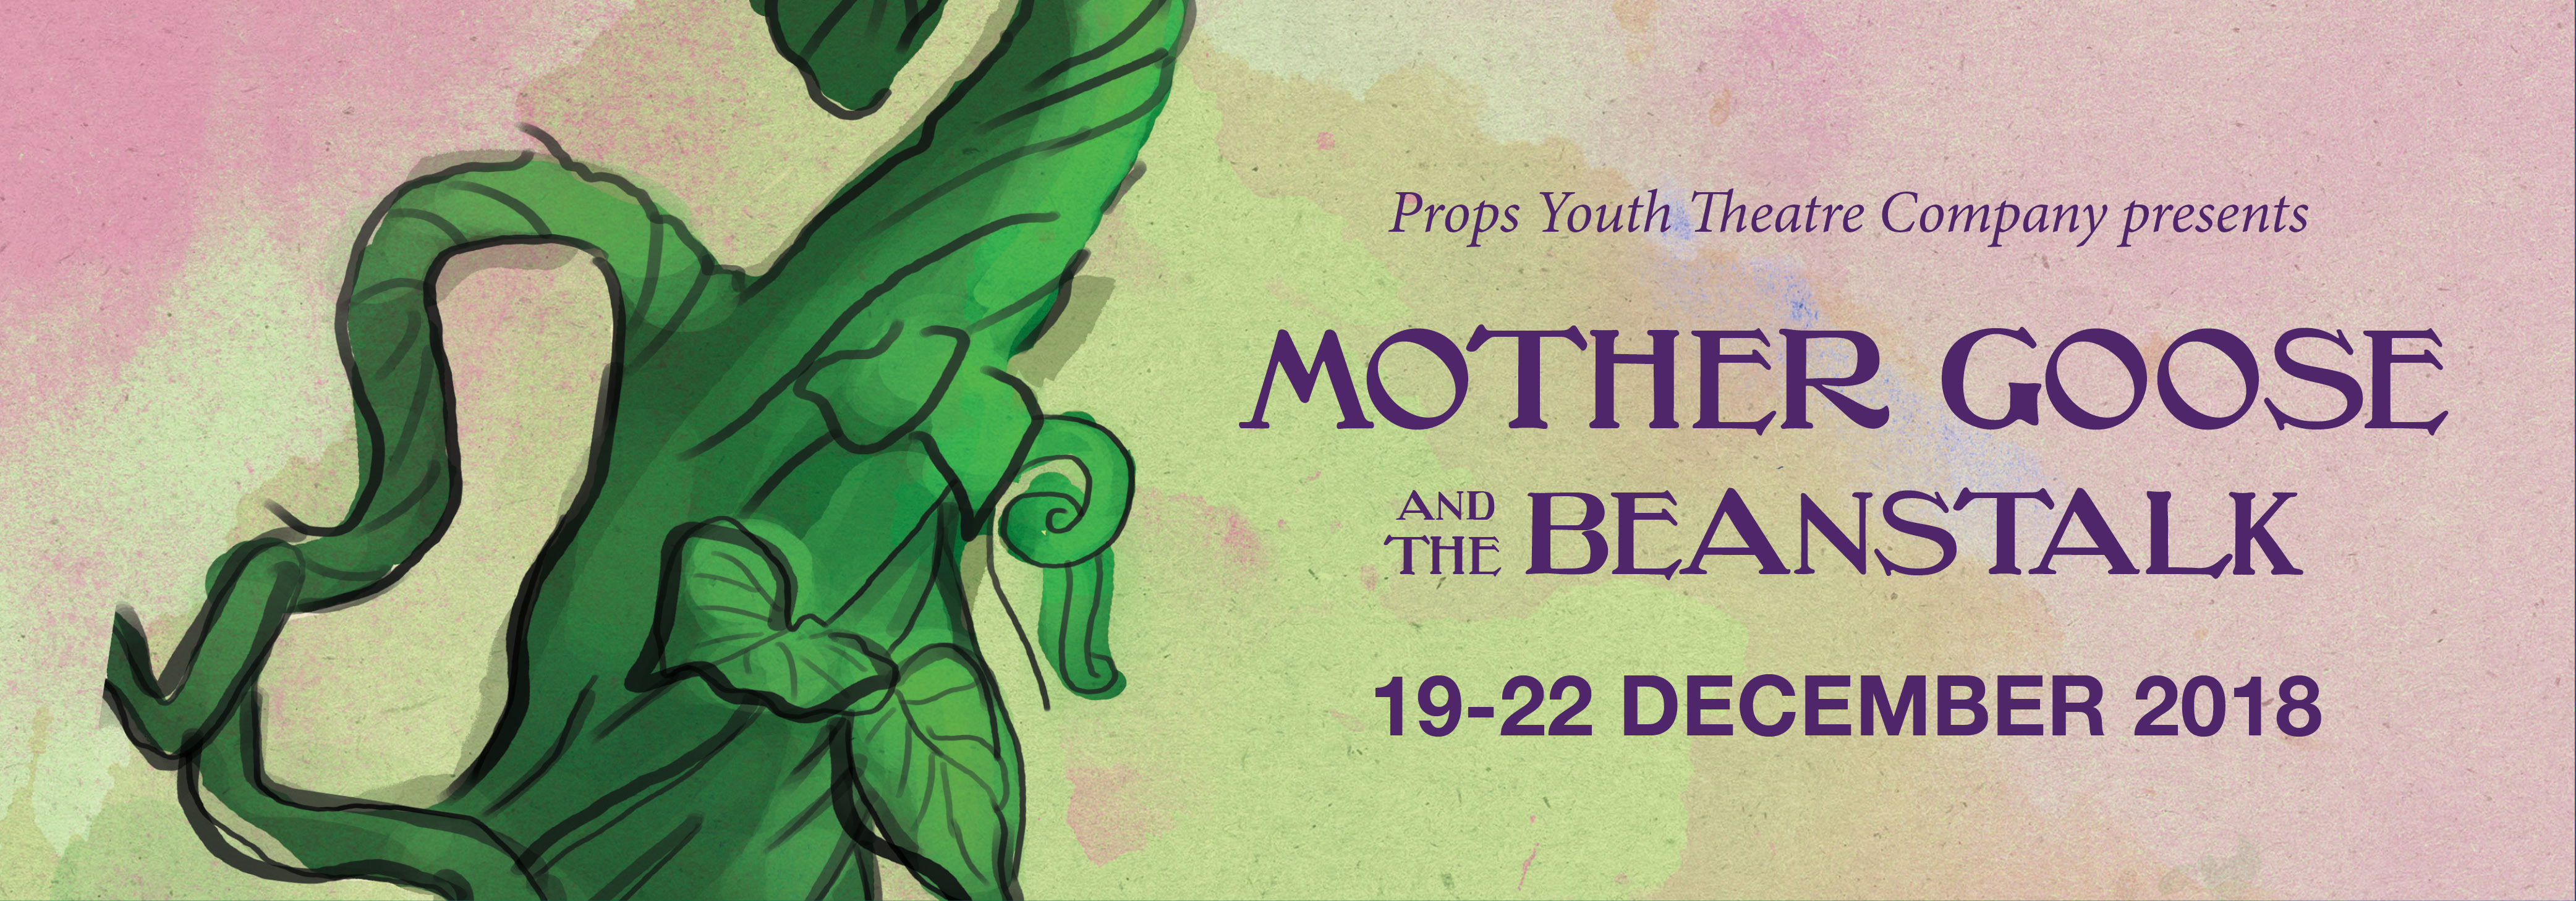 Full Throttle Theatre Company presents: Mother Goose and the Beanstalk - 9-15 December 2018